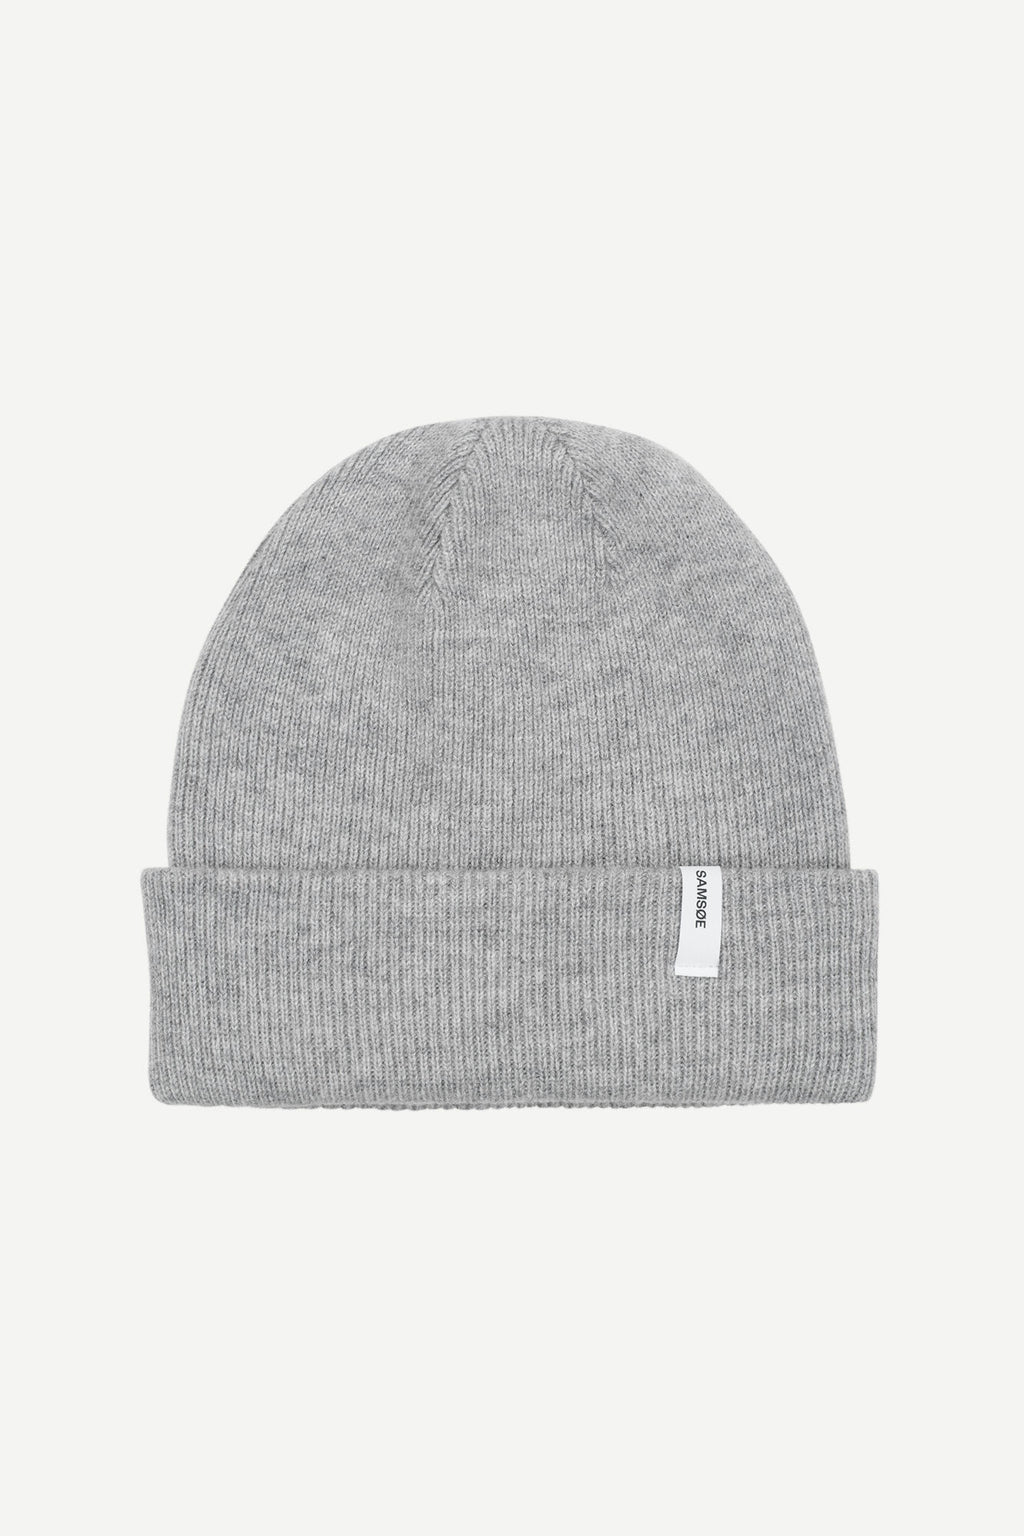 Samsøe Samsøe The Beanie Grey Melange